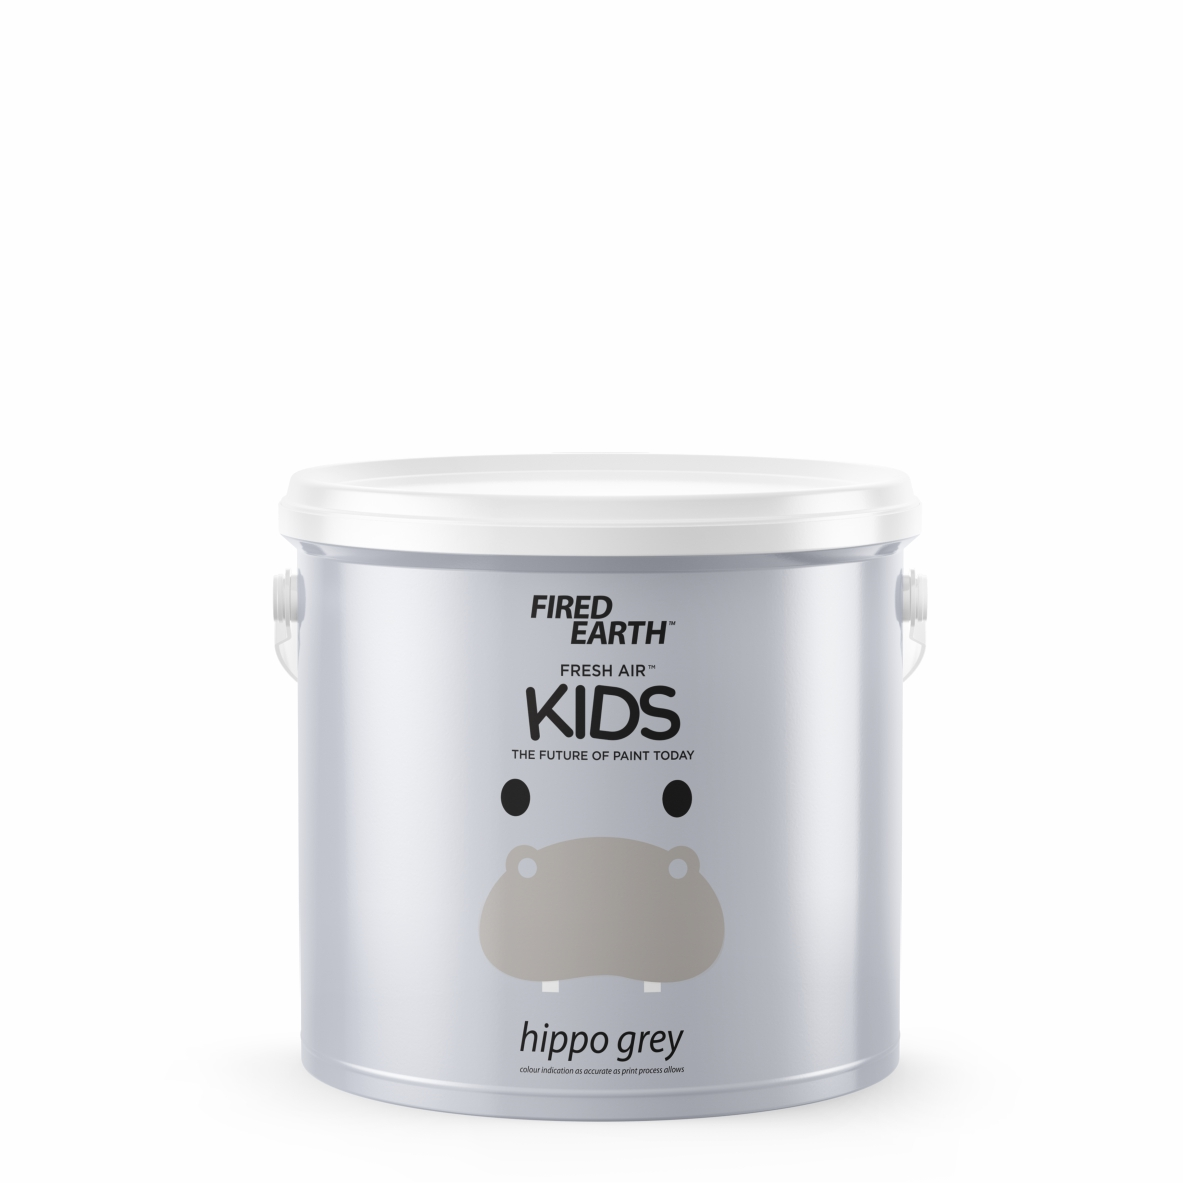 FE Fresh Air Kids hippo grey.jpg